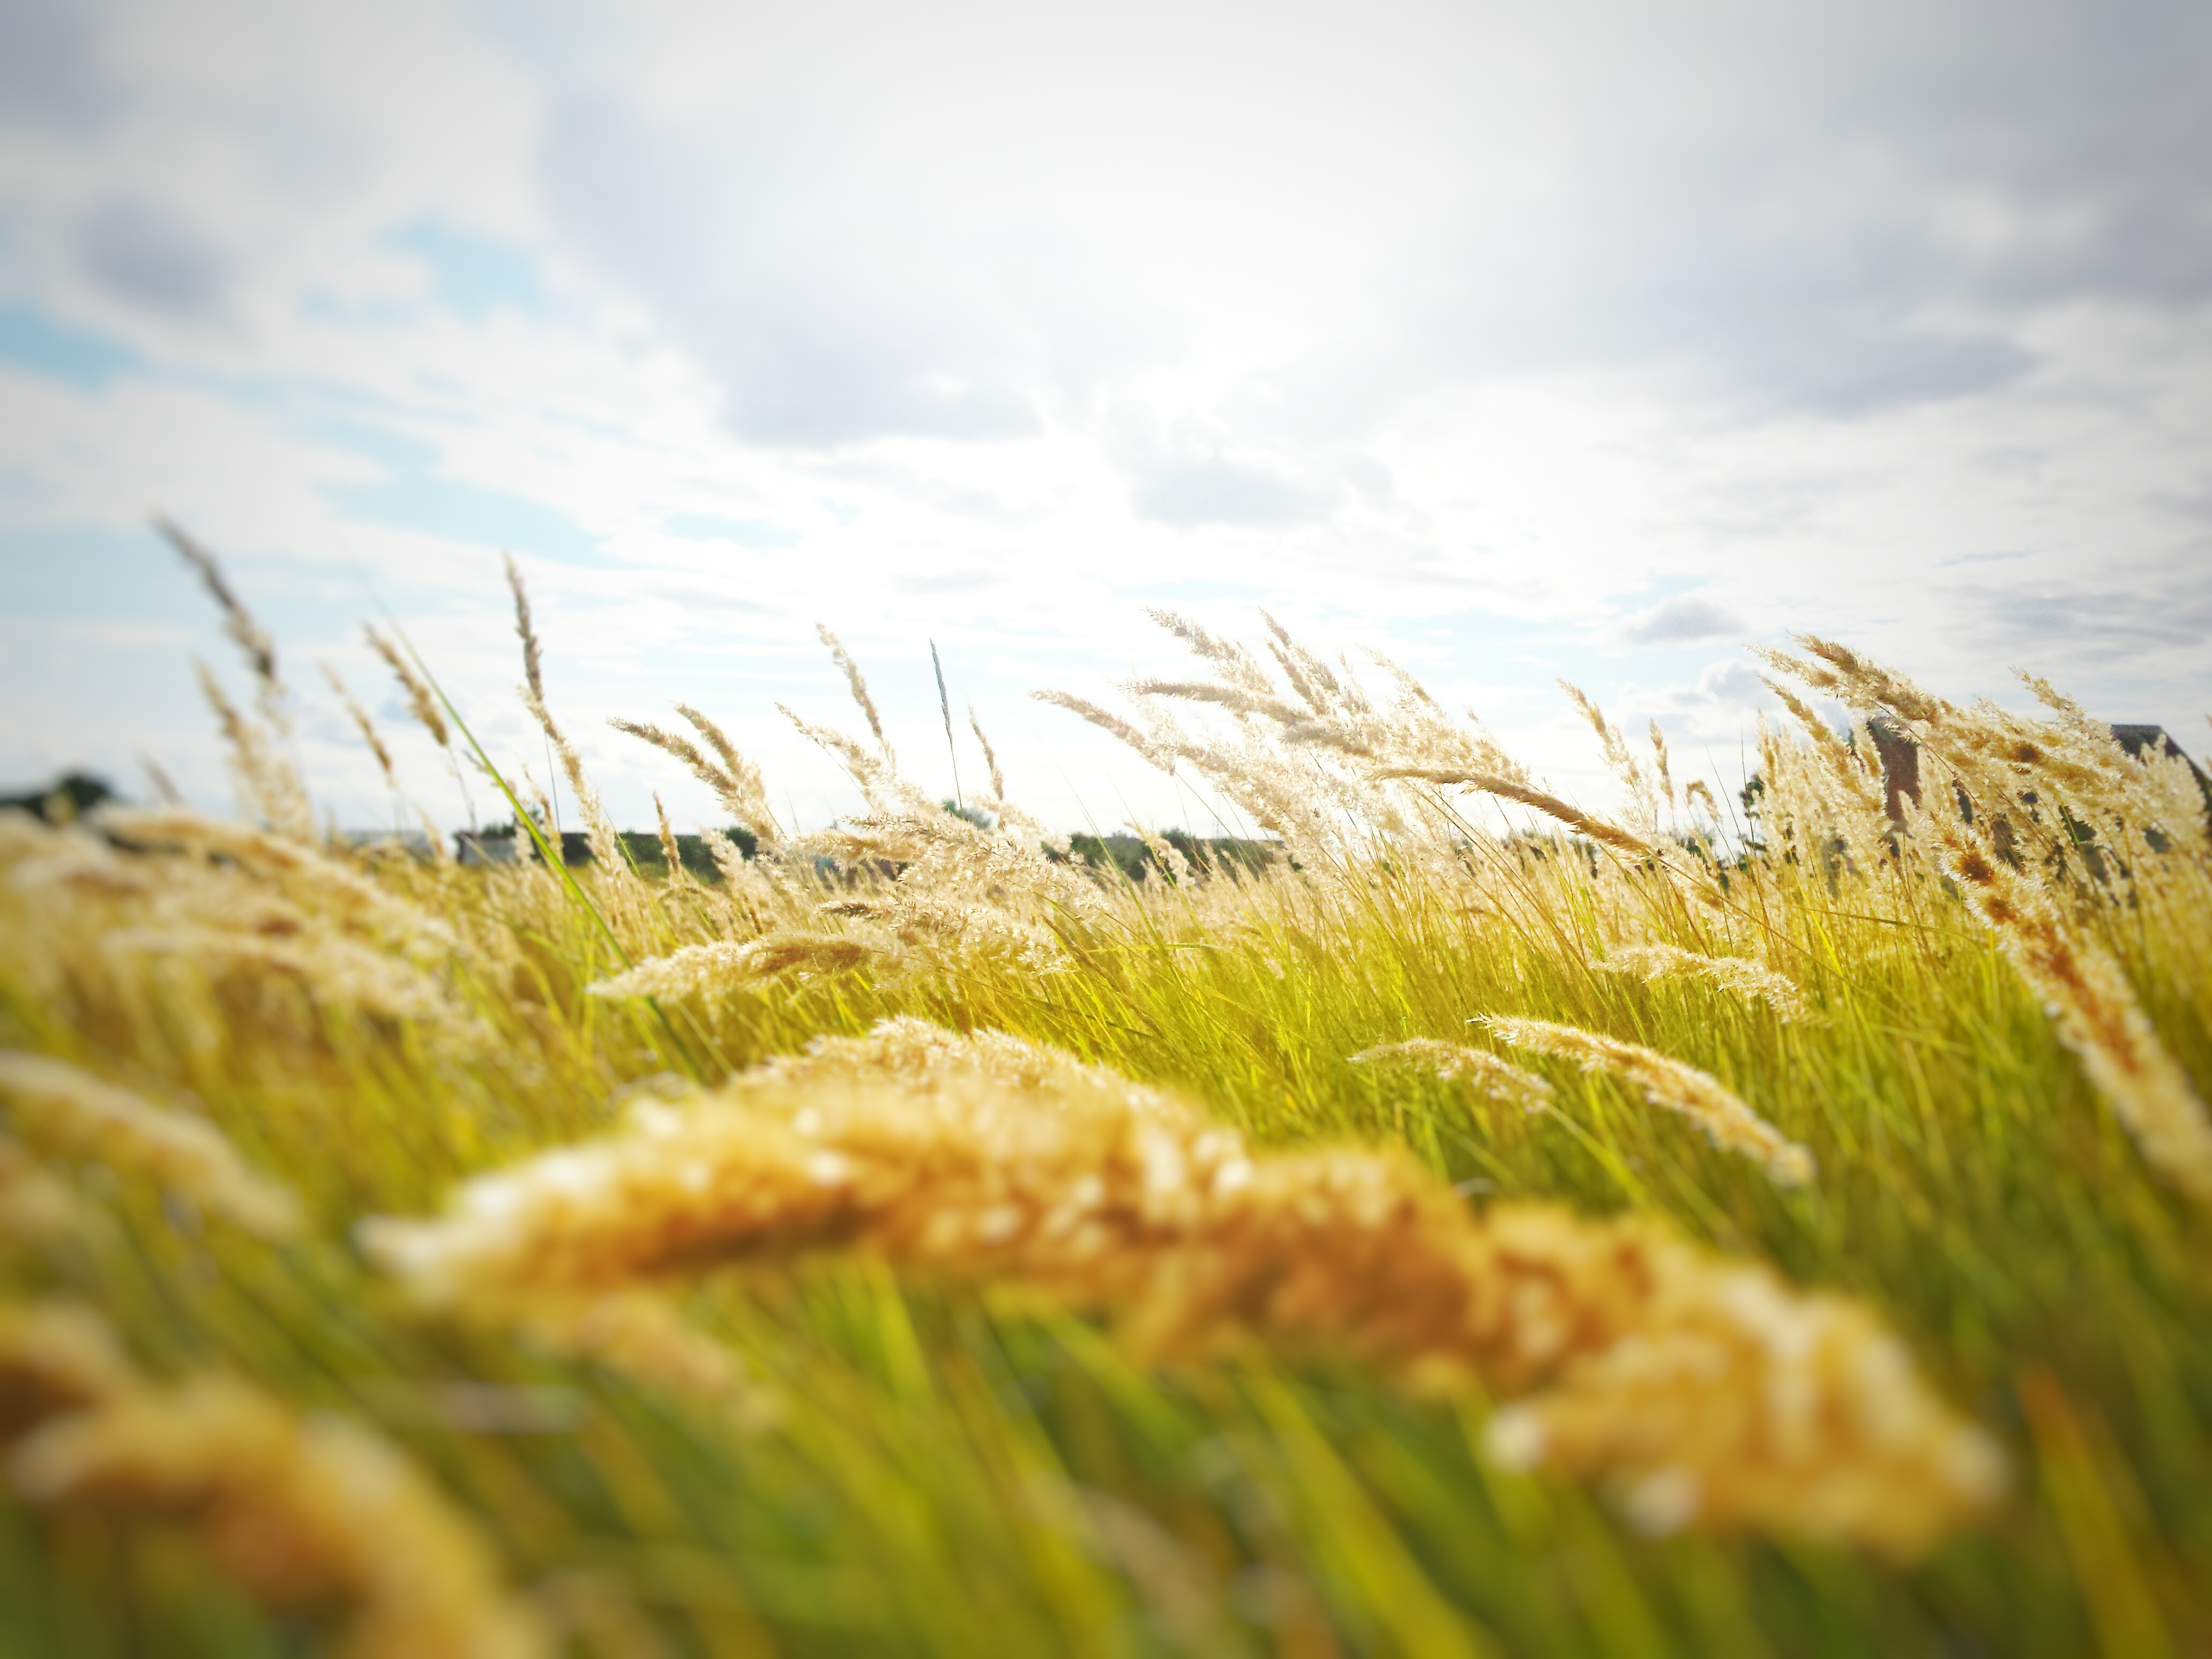 Cool Nature Wallpapers Hd Rice Grain Grass Field 183 Free Stock Photo